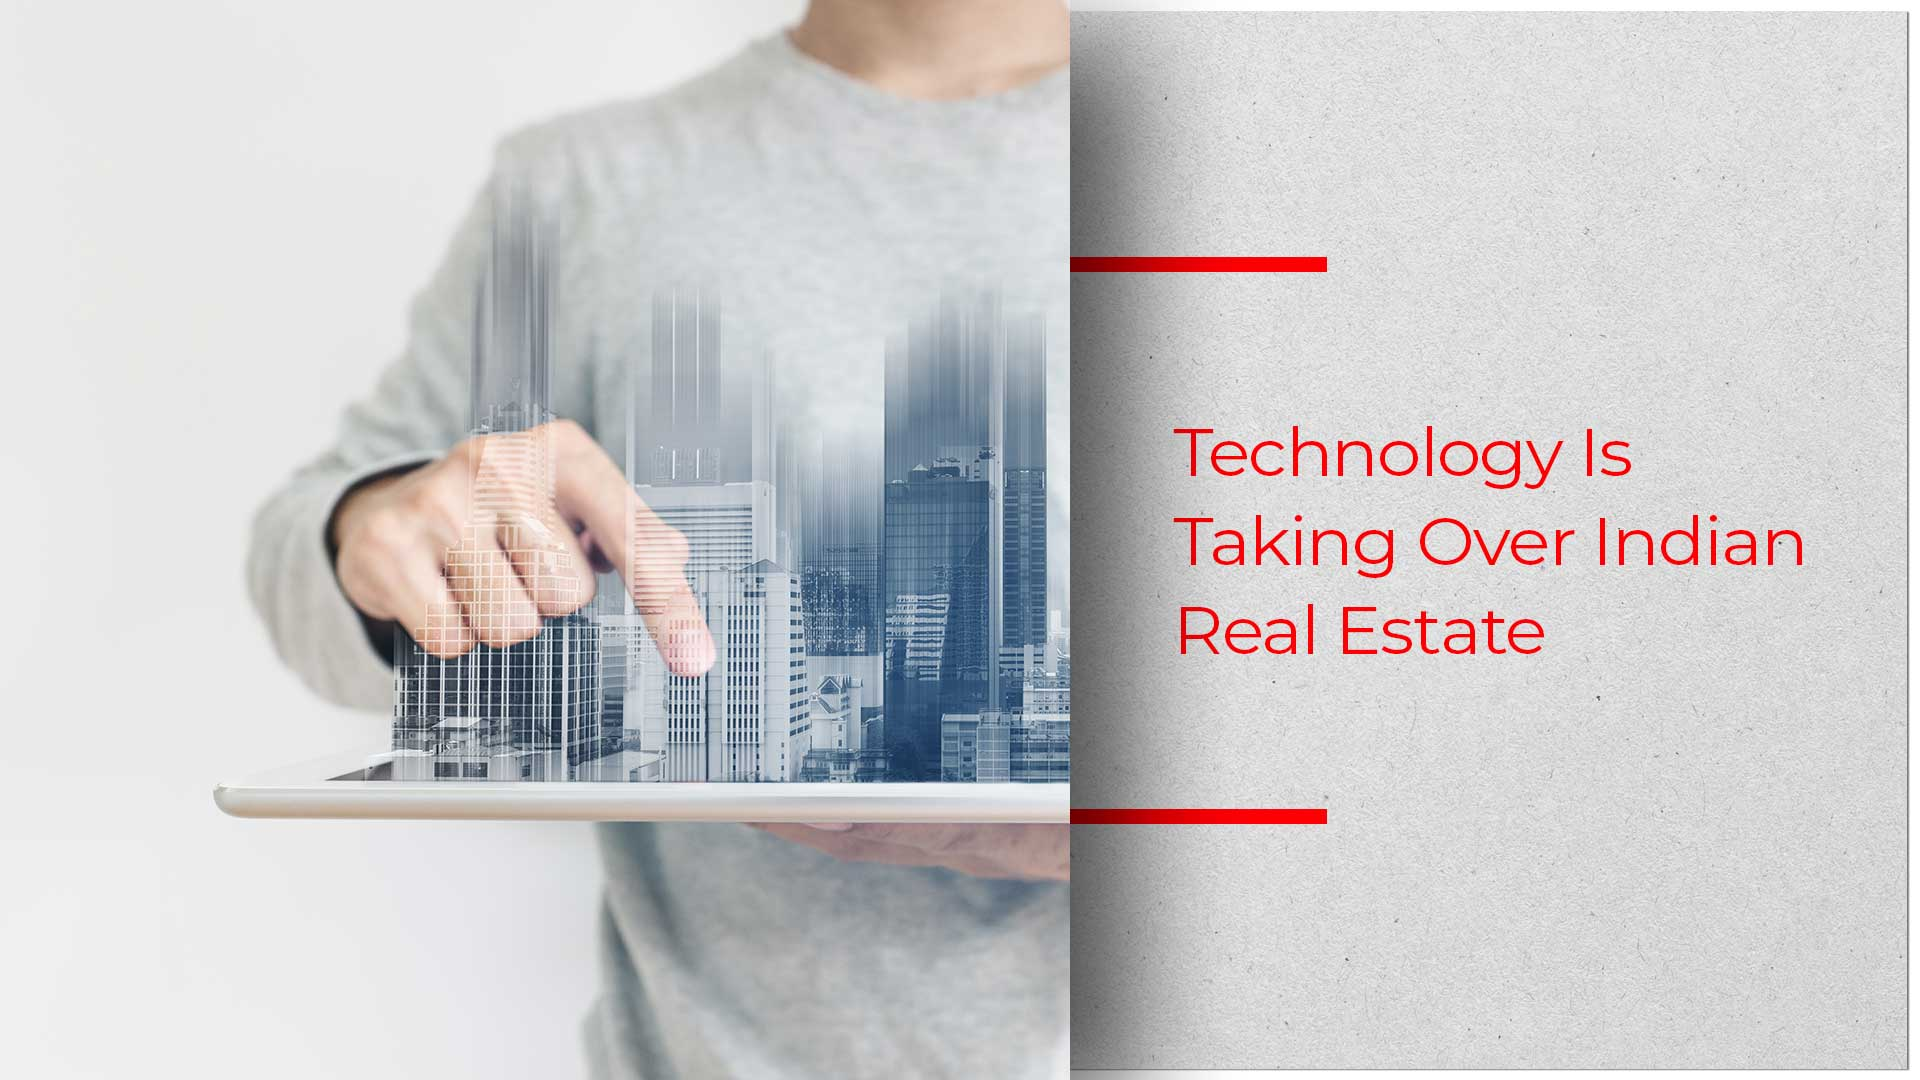 Indian Real Estate Banks On Technology For Better ResultsIndian Real Estate Banks On Technology For Better Results